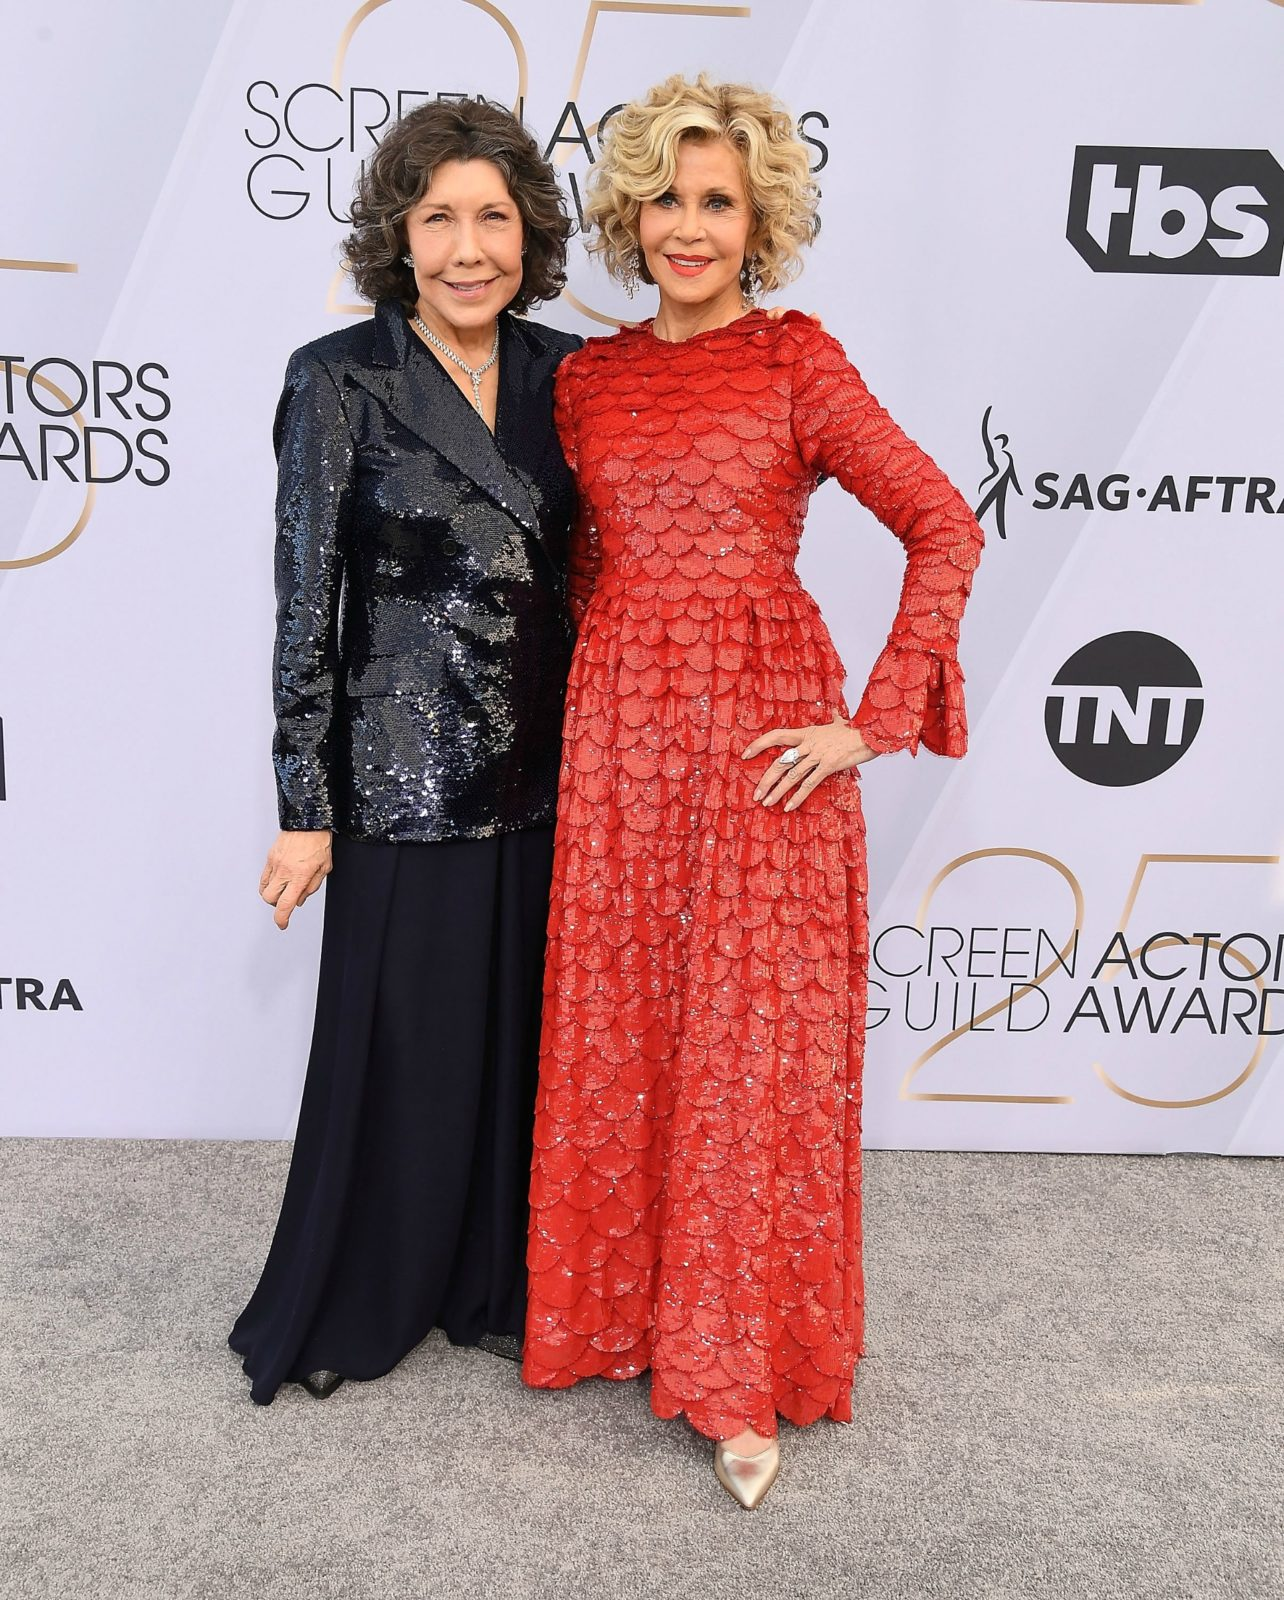 Jane Fonda kept her style elegant as she hit the red carpet alongside her co-star Lily Tomlin. Source: Getty